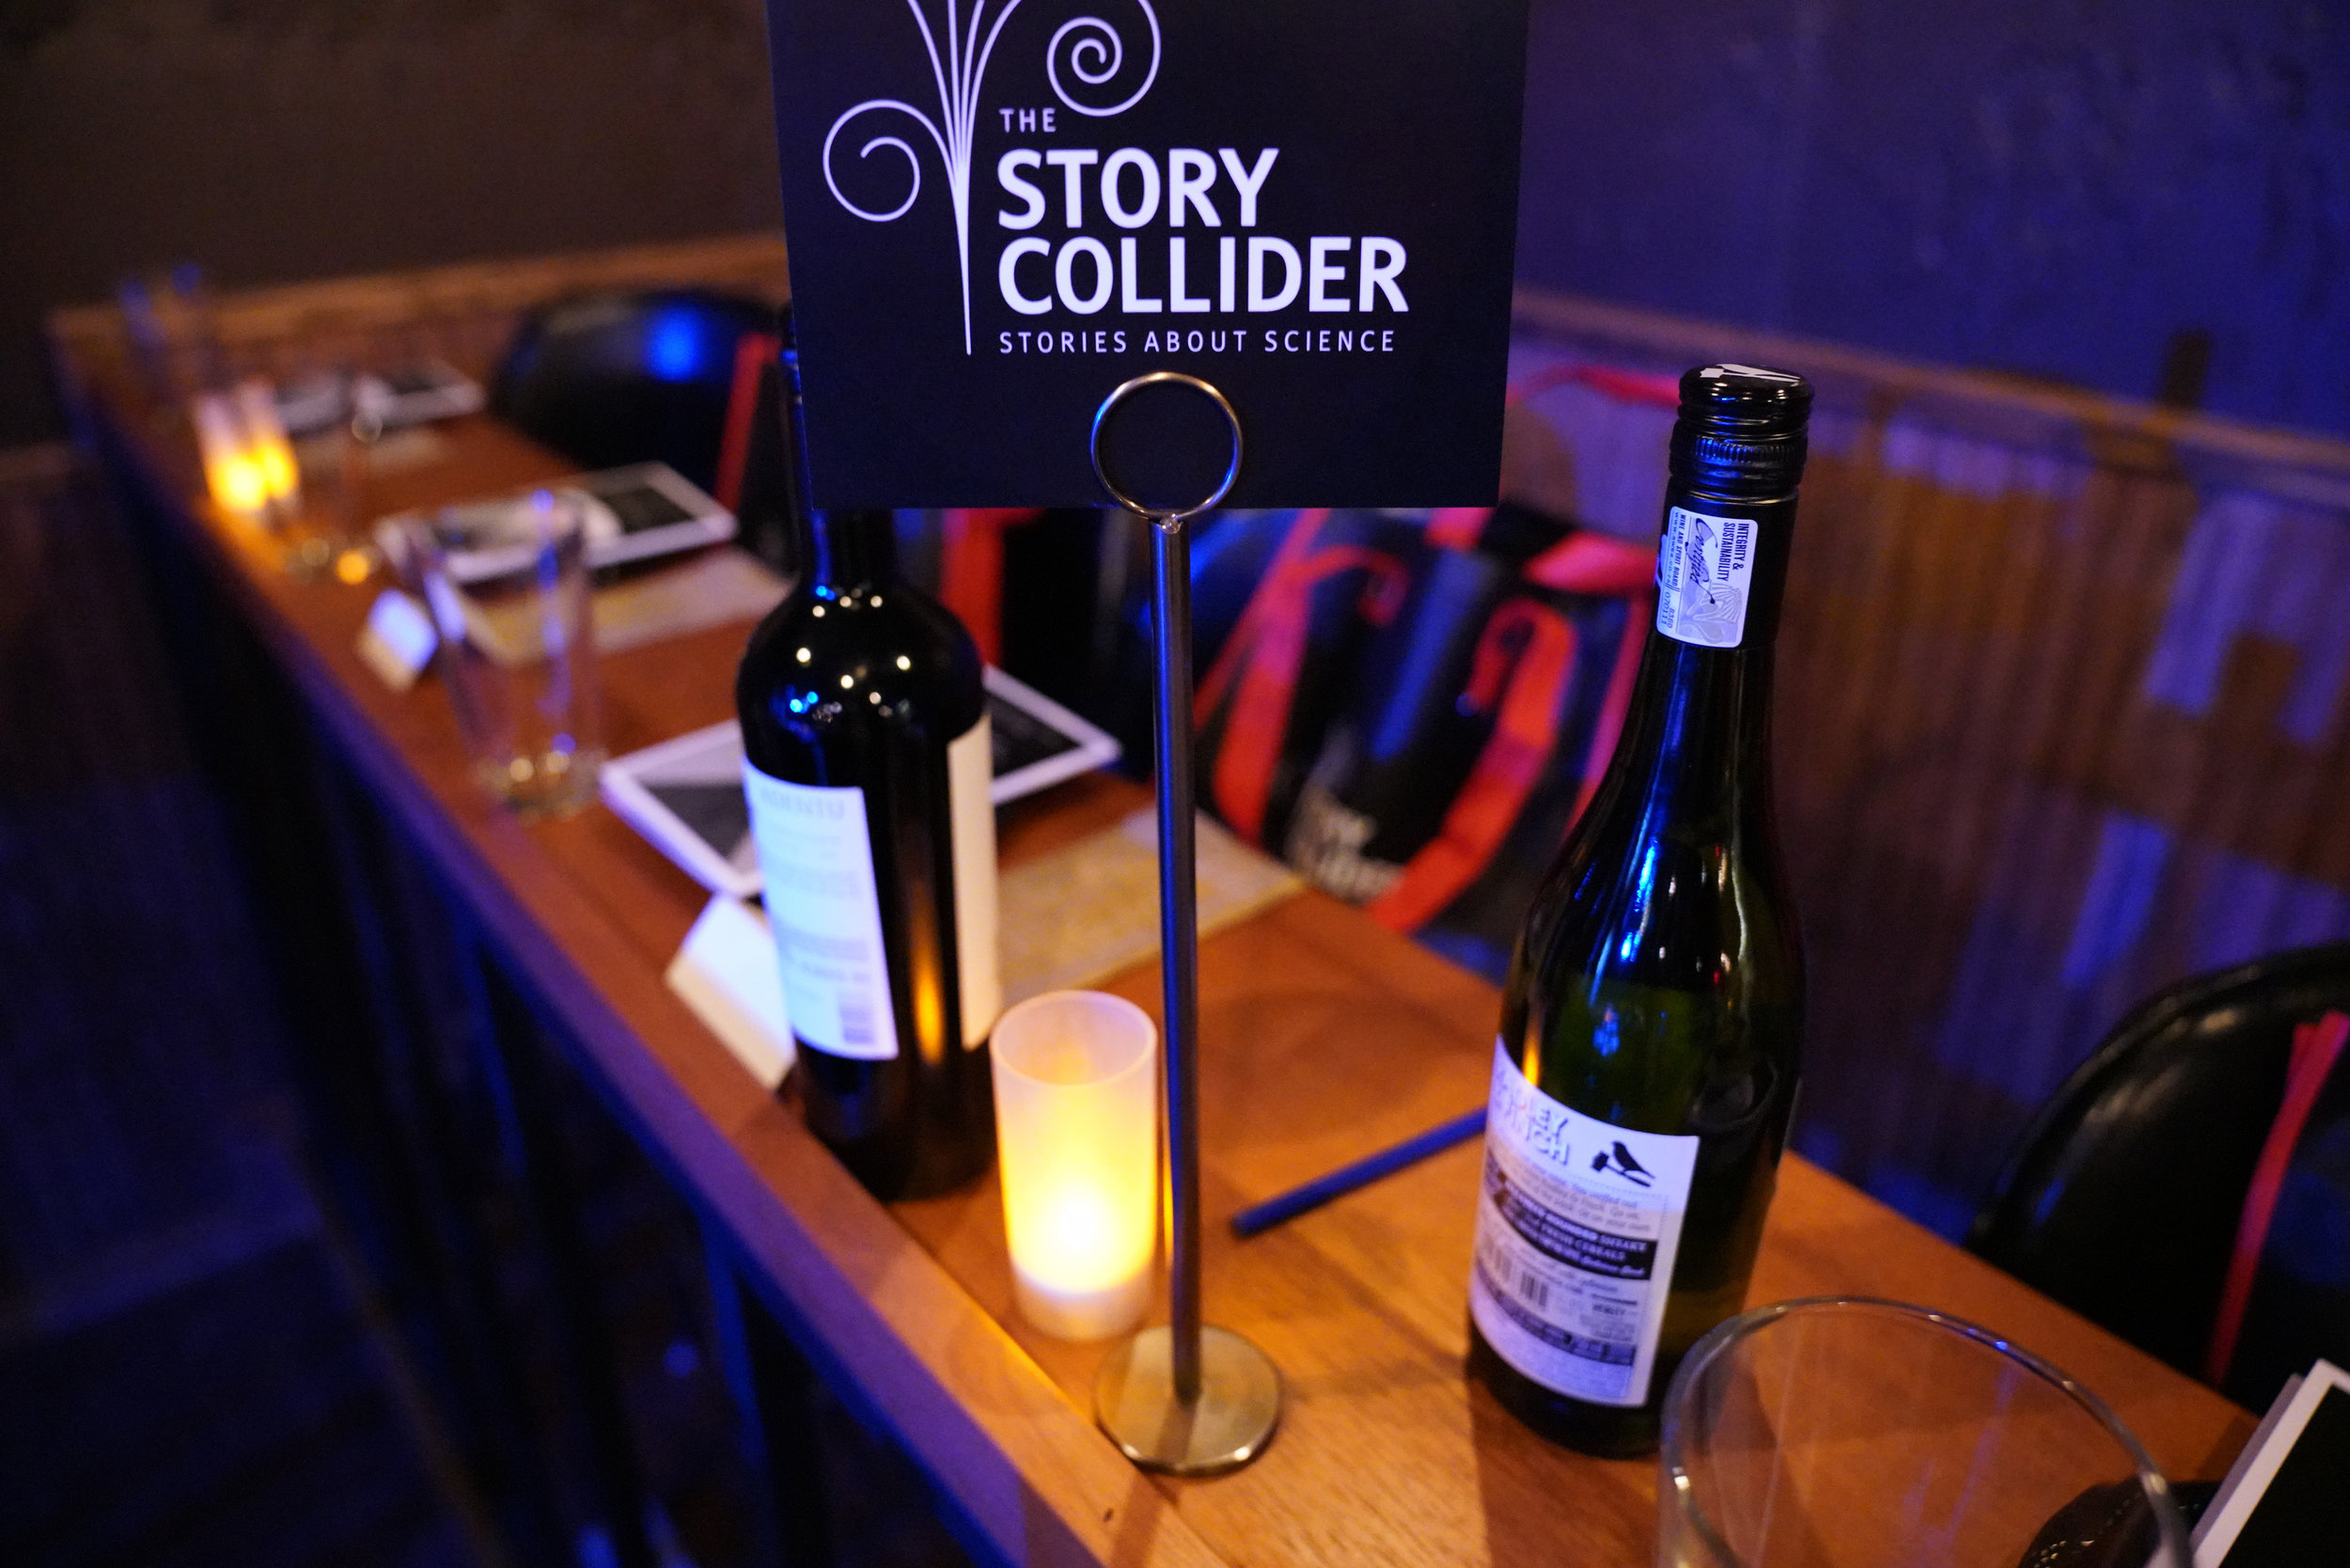 Gift bags and wine are all ready for our guests, thanks to Story Collider volunteers who worked diligently on setup! (Special thanks to  Lavender Wind Farm  for providing accessories for our gift bags!)